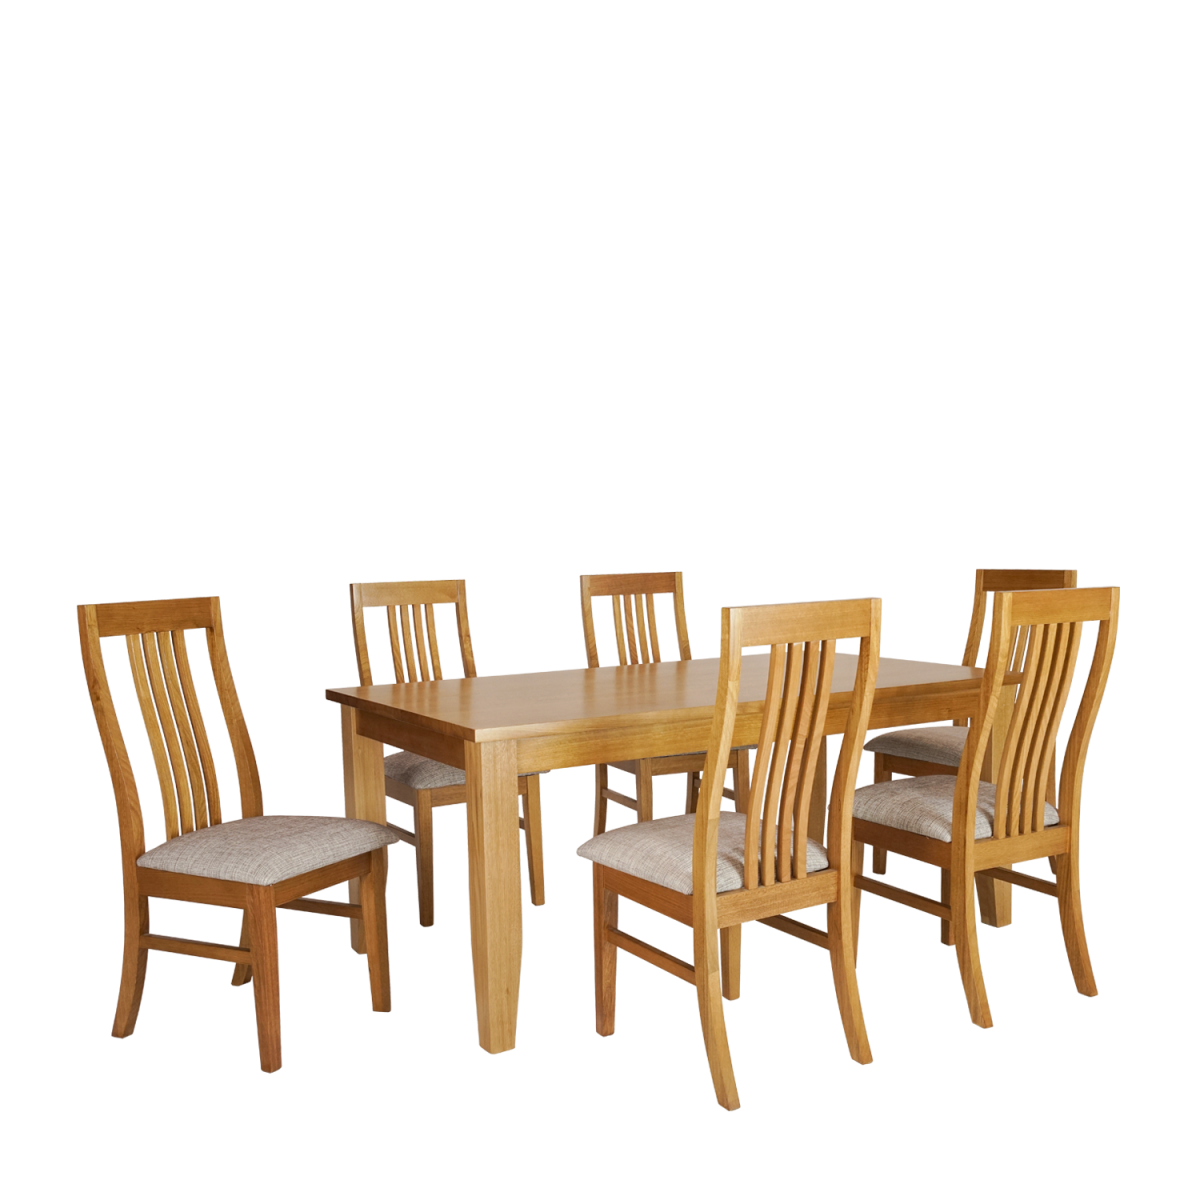 Double Star Furniture Stella Dining Set 7 PieceDouble Star